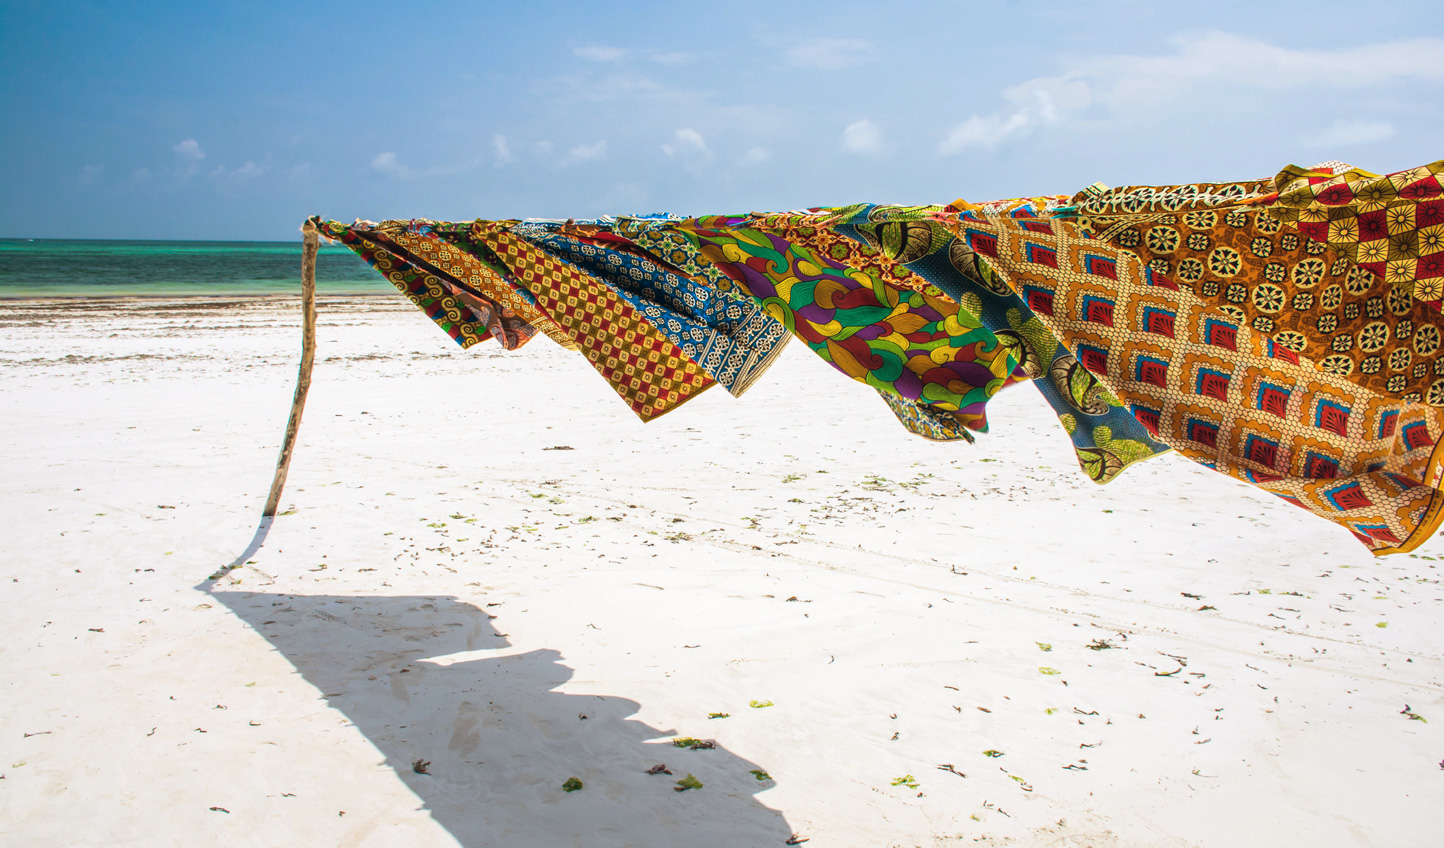 Stroll the length of Diani Beach and soak up local culture